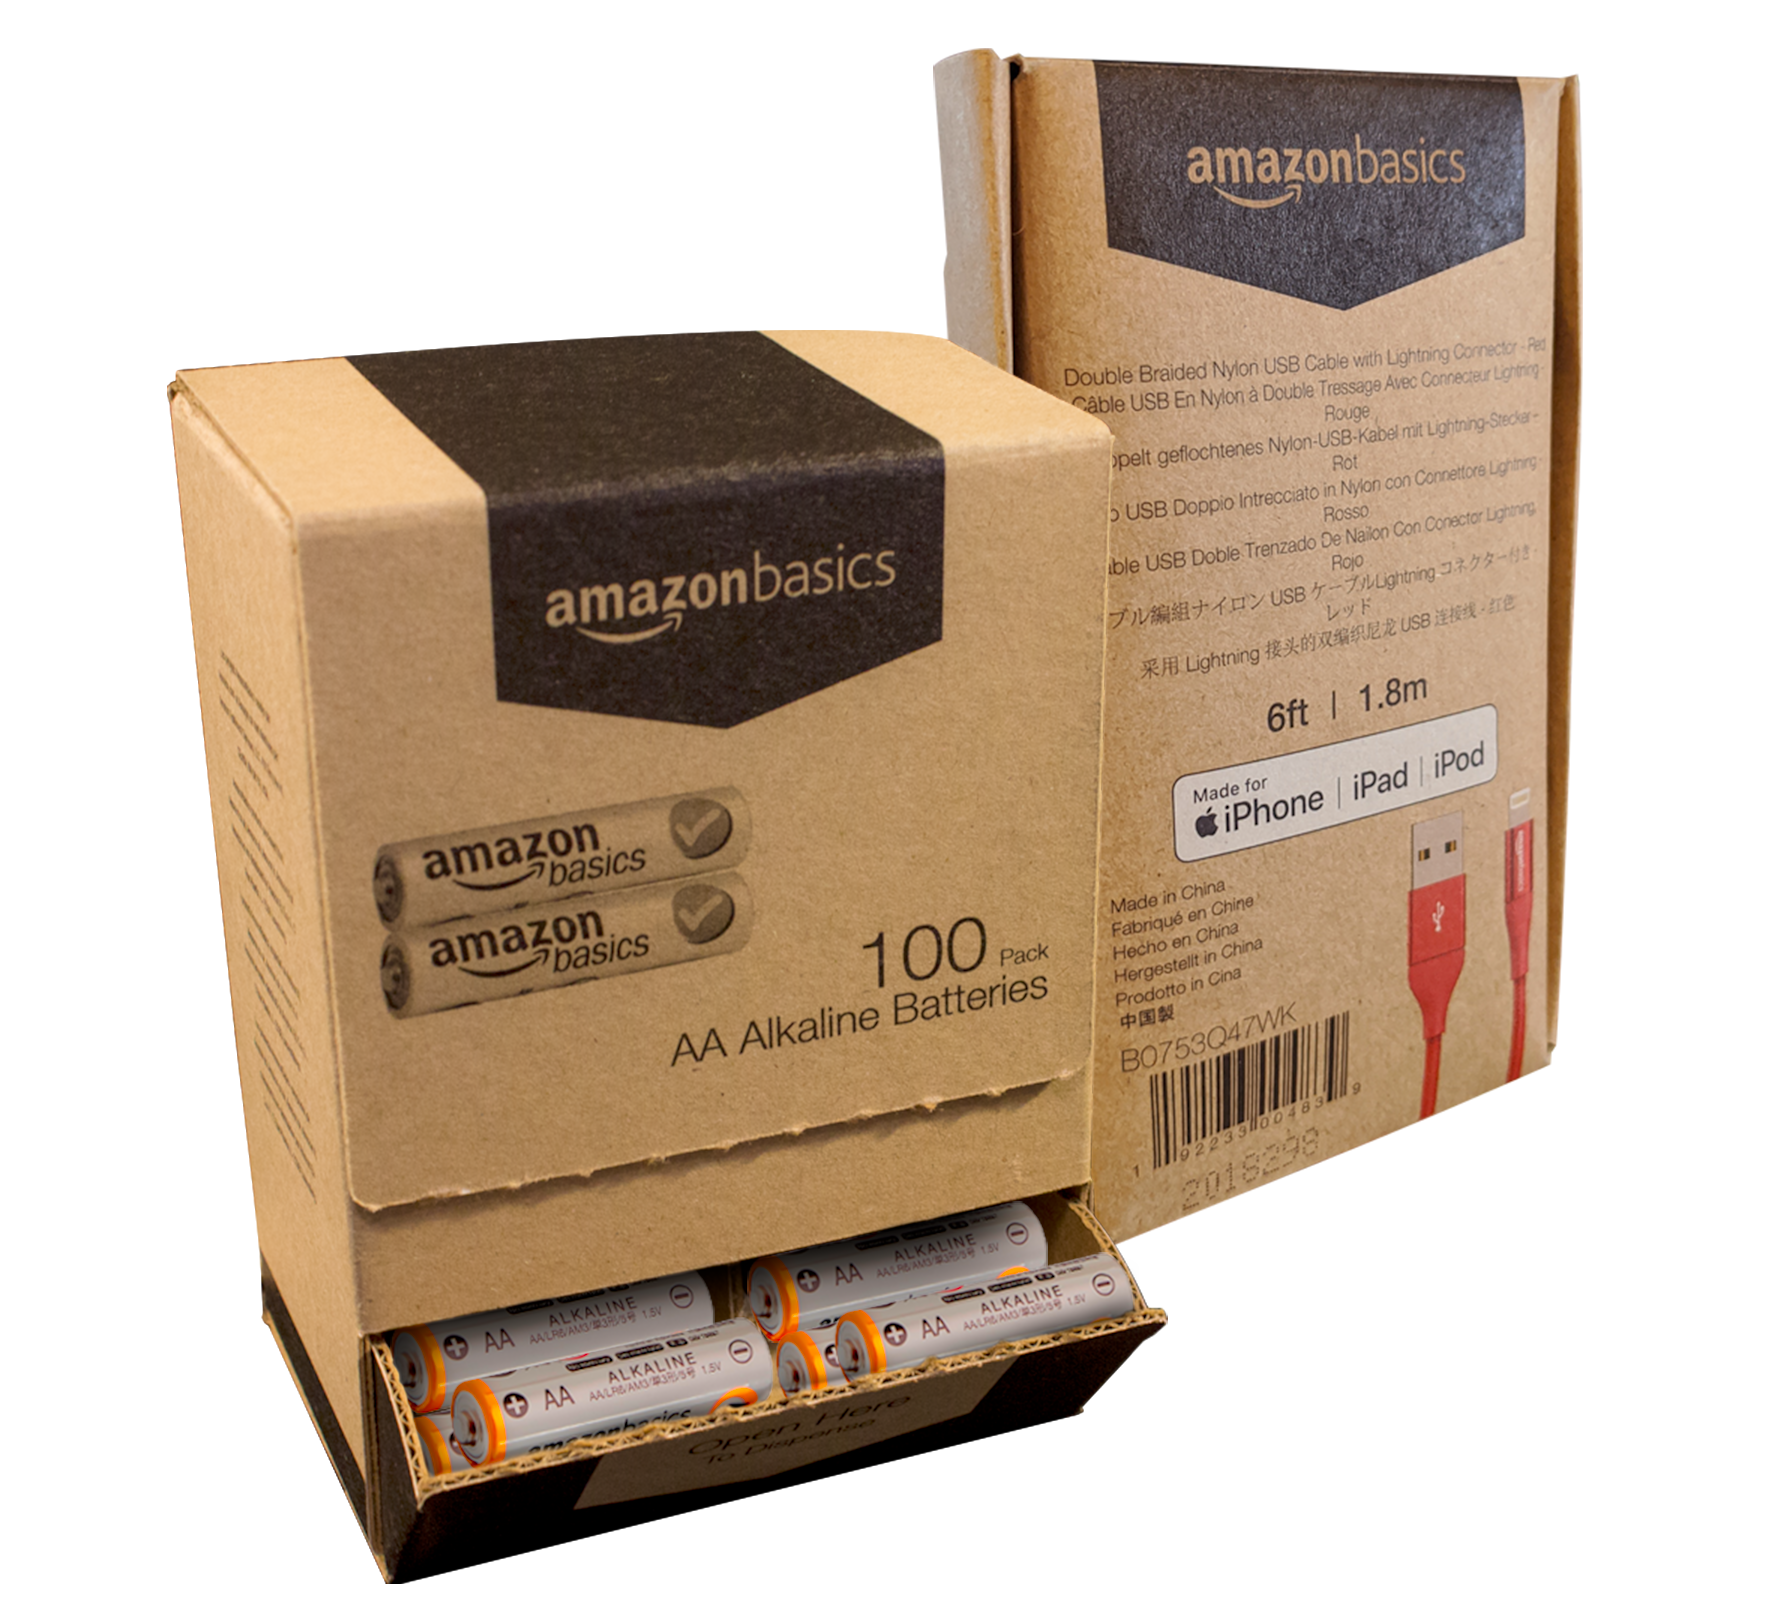 Amazon Batteries & Cables